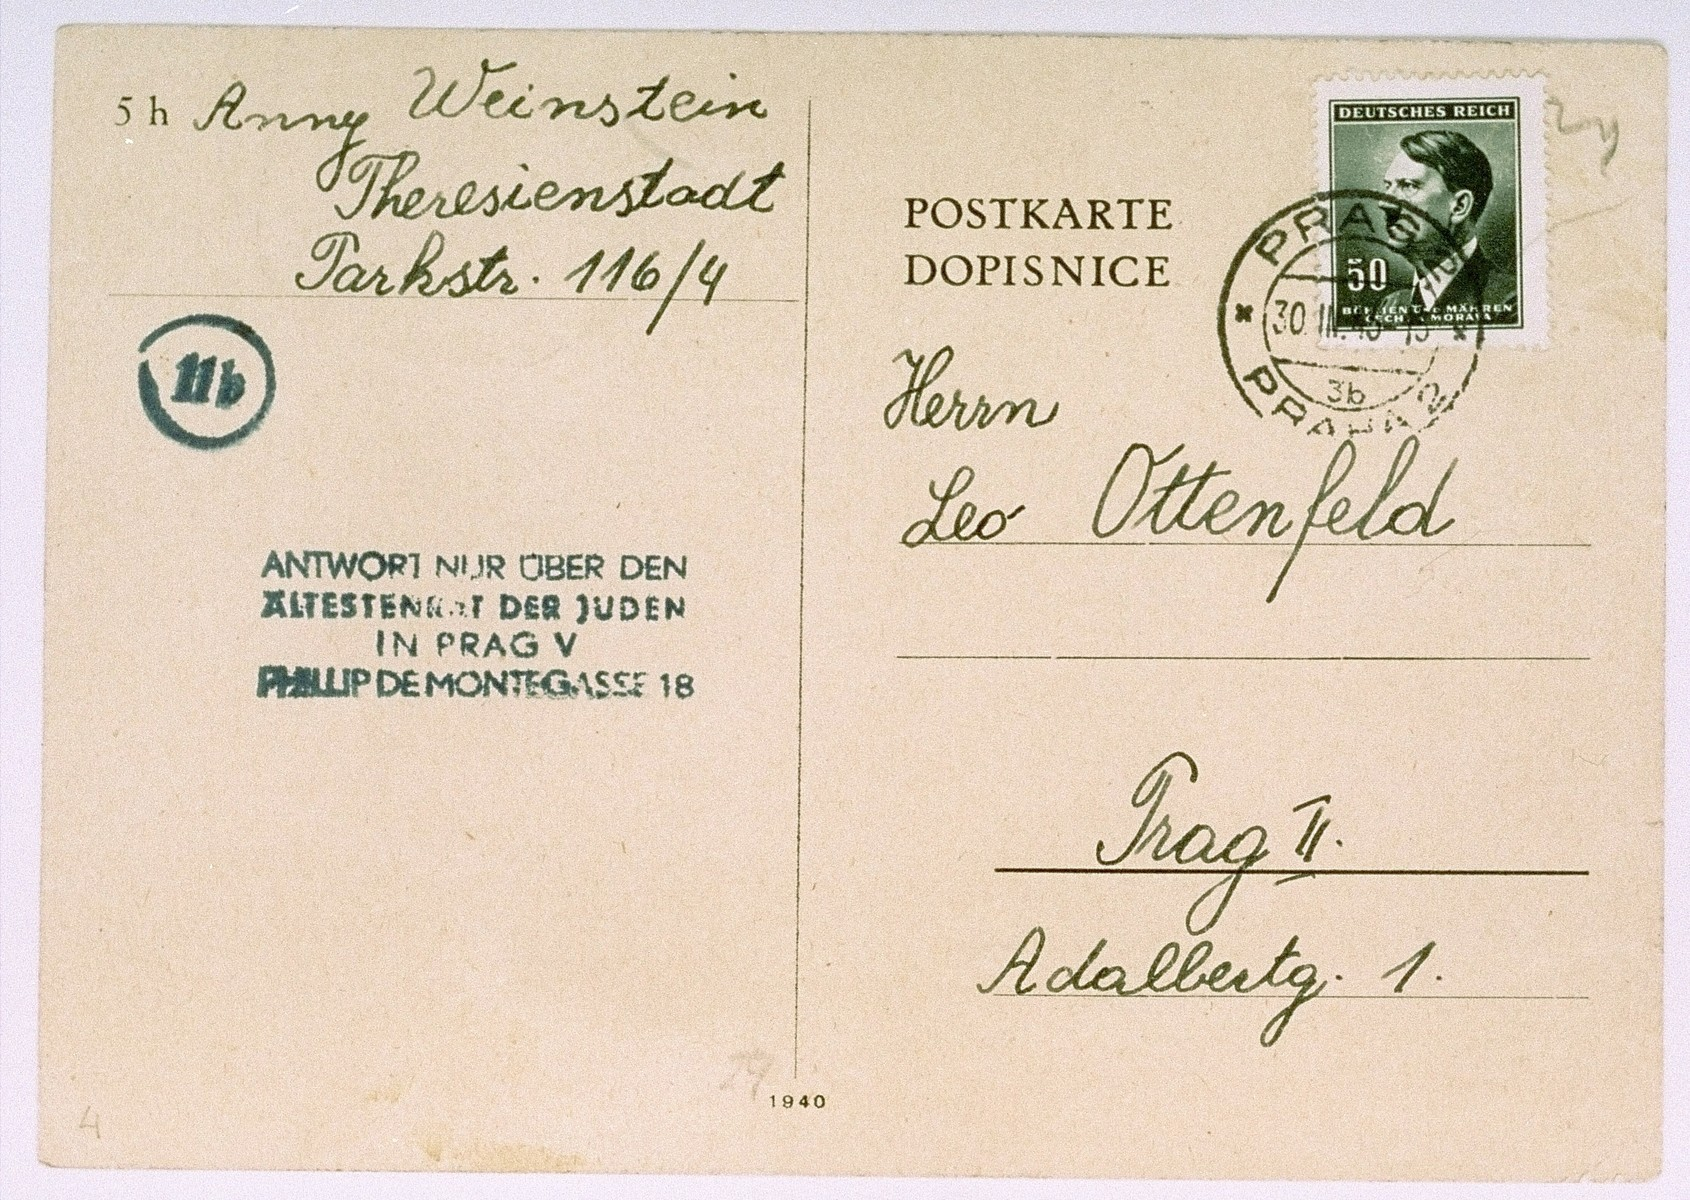 Postcard sent by Anny Weinstein from Theresienstadt concentration camp to Leo Ottenfeld, member of the Jewish Council in Prague. Anny thanks Mr. Ottenfeld for sending her a package, informs him that Brabenec and Alice Meier are well and sends her wishes.  The postcard bears a Hitler postage stamp.